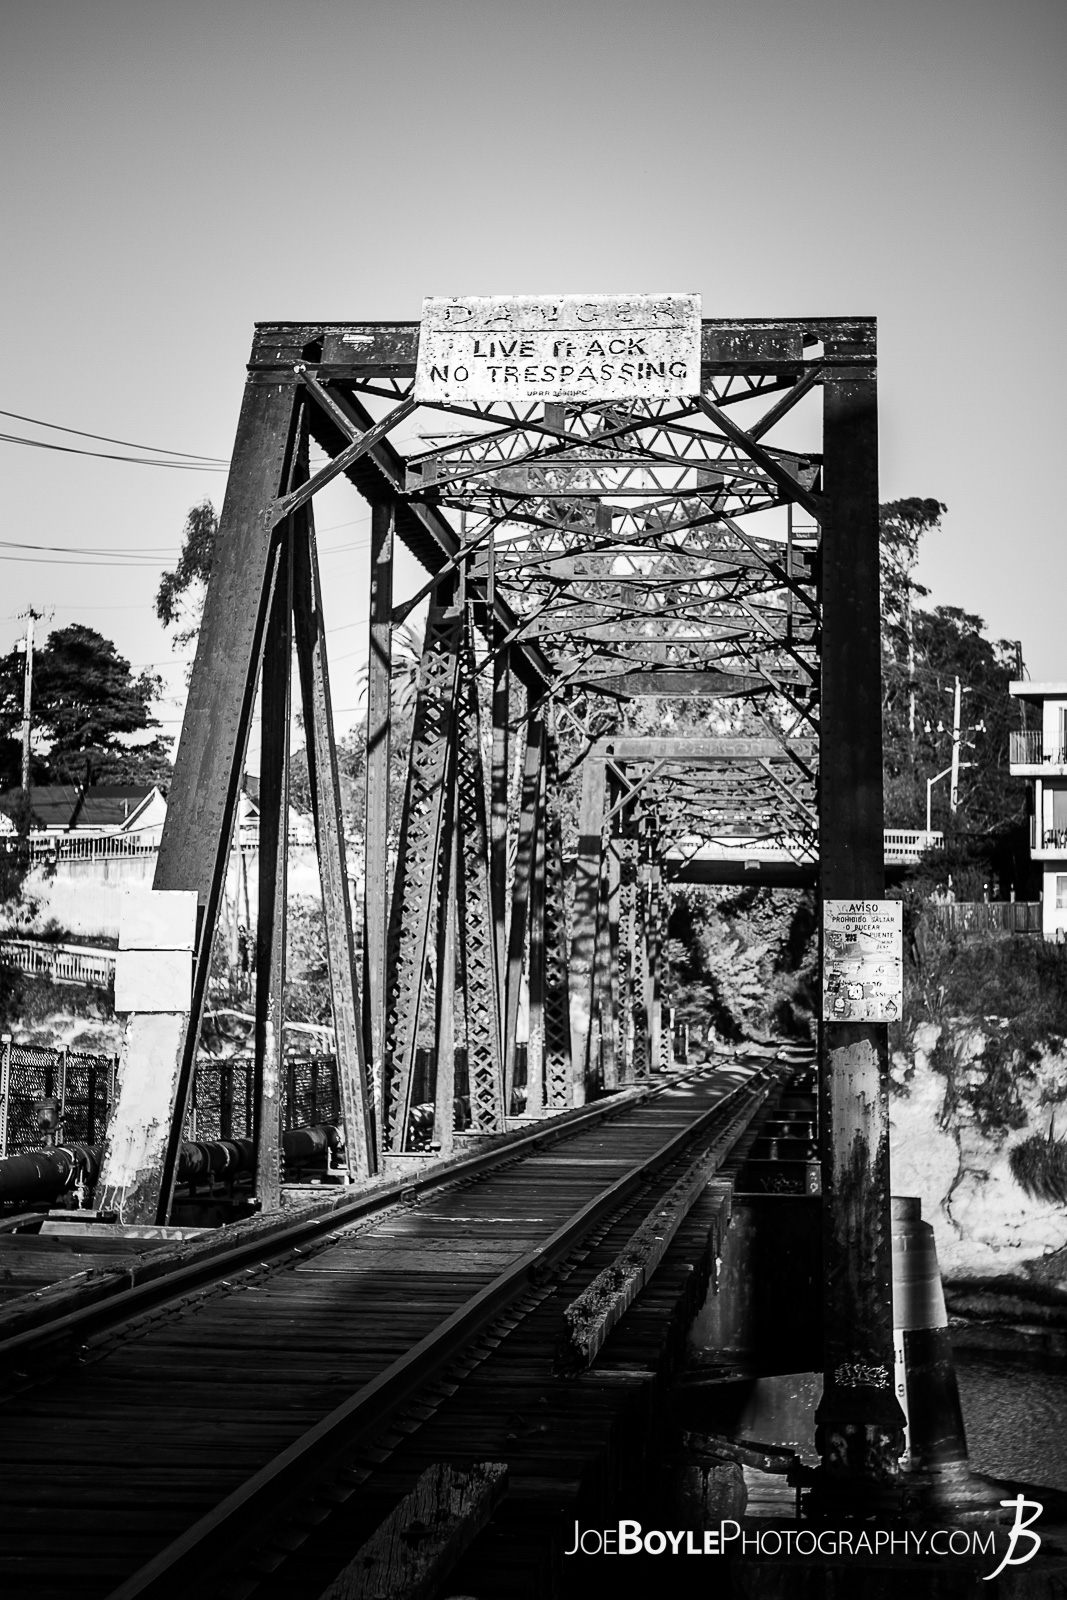 While I was visiting Santa Cruz I found this bridge! Here is a black and white photo of this unique, industrious landmark. I love the look of the iron or steel pylon supports.